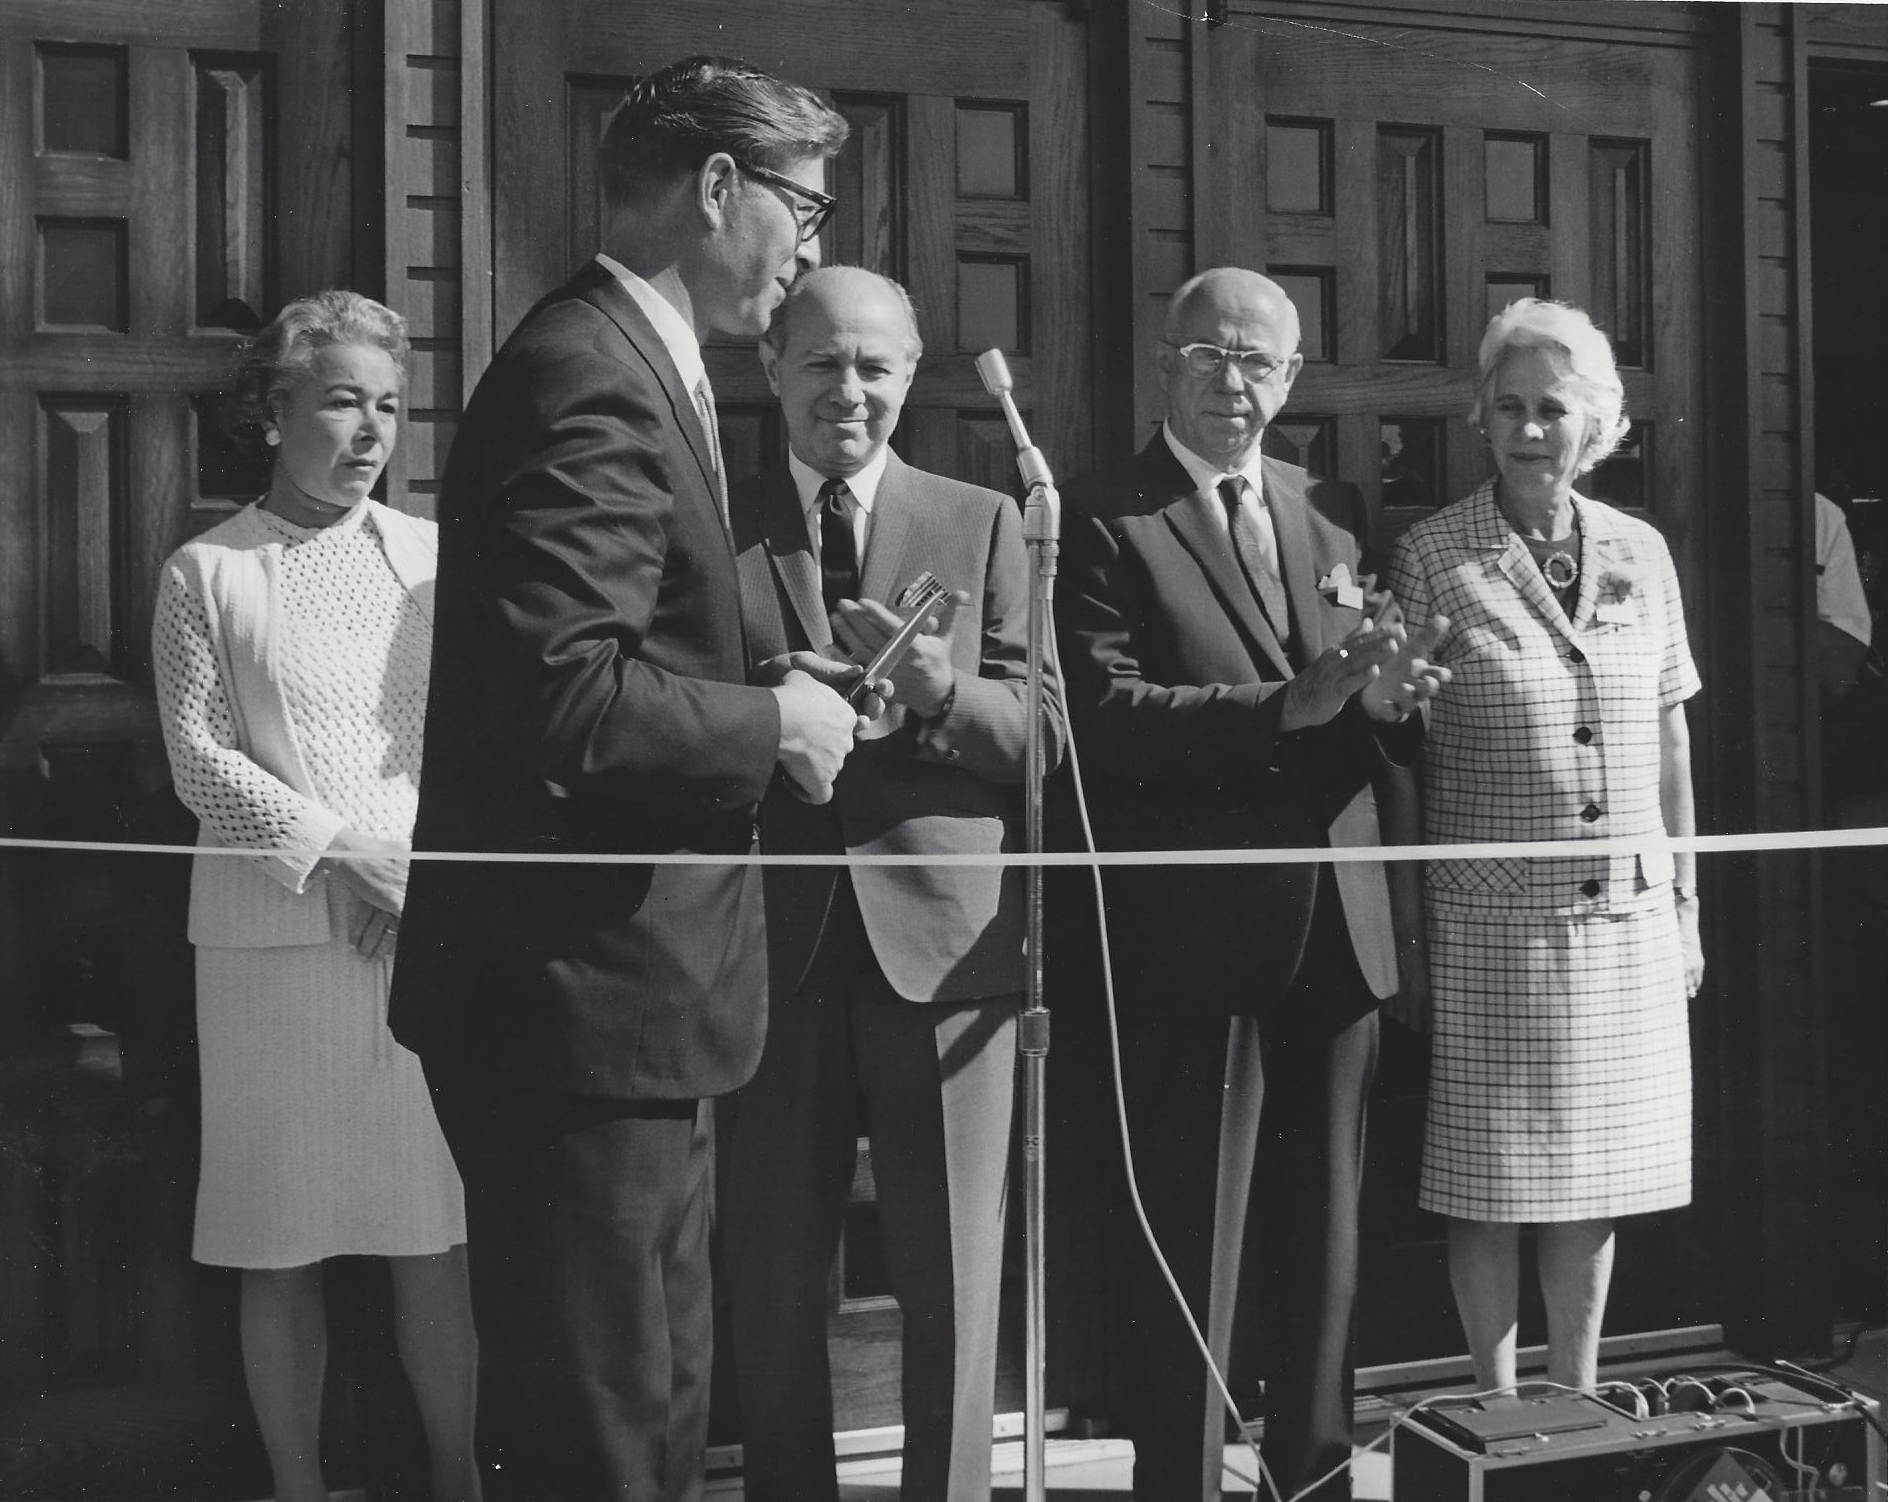 Ribbon cutting for American Furniture store at Menaul and Carlisle in 1968 with Pete Domenici in front of (from left to right): Frieda Blaugrund, wife of E. Mannie; E. Mannie Blaugrund; Henry Blaugrund; Ruth, wife of Henry.